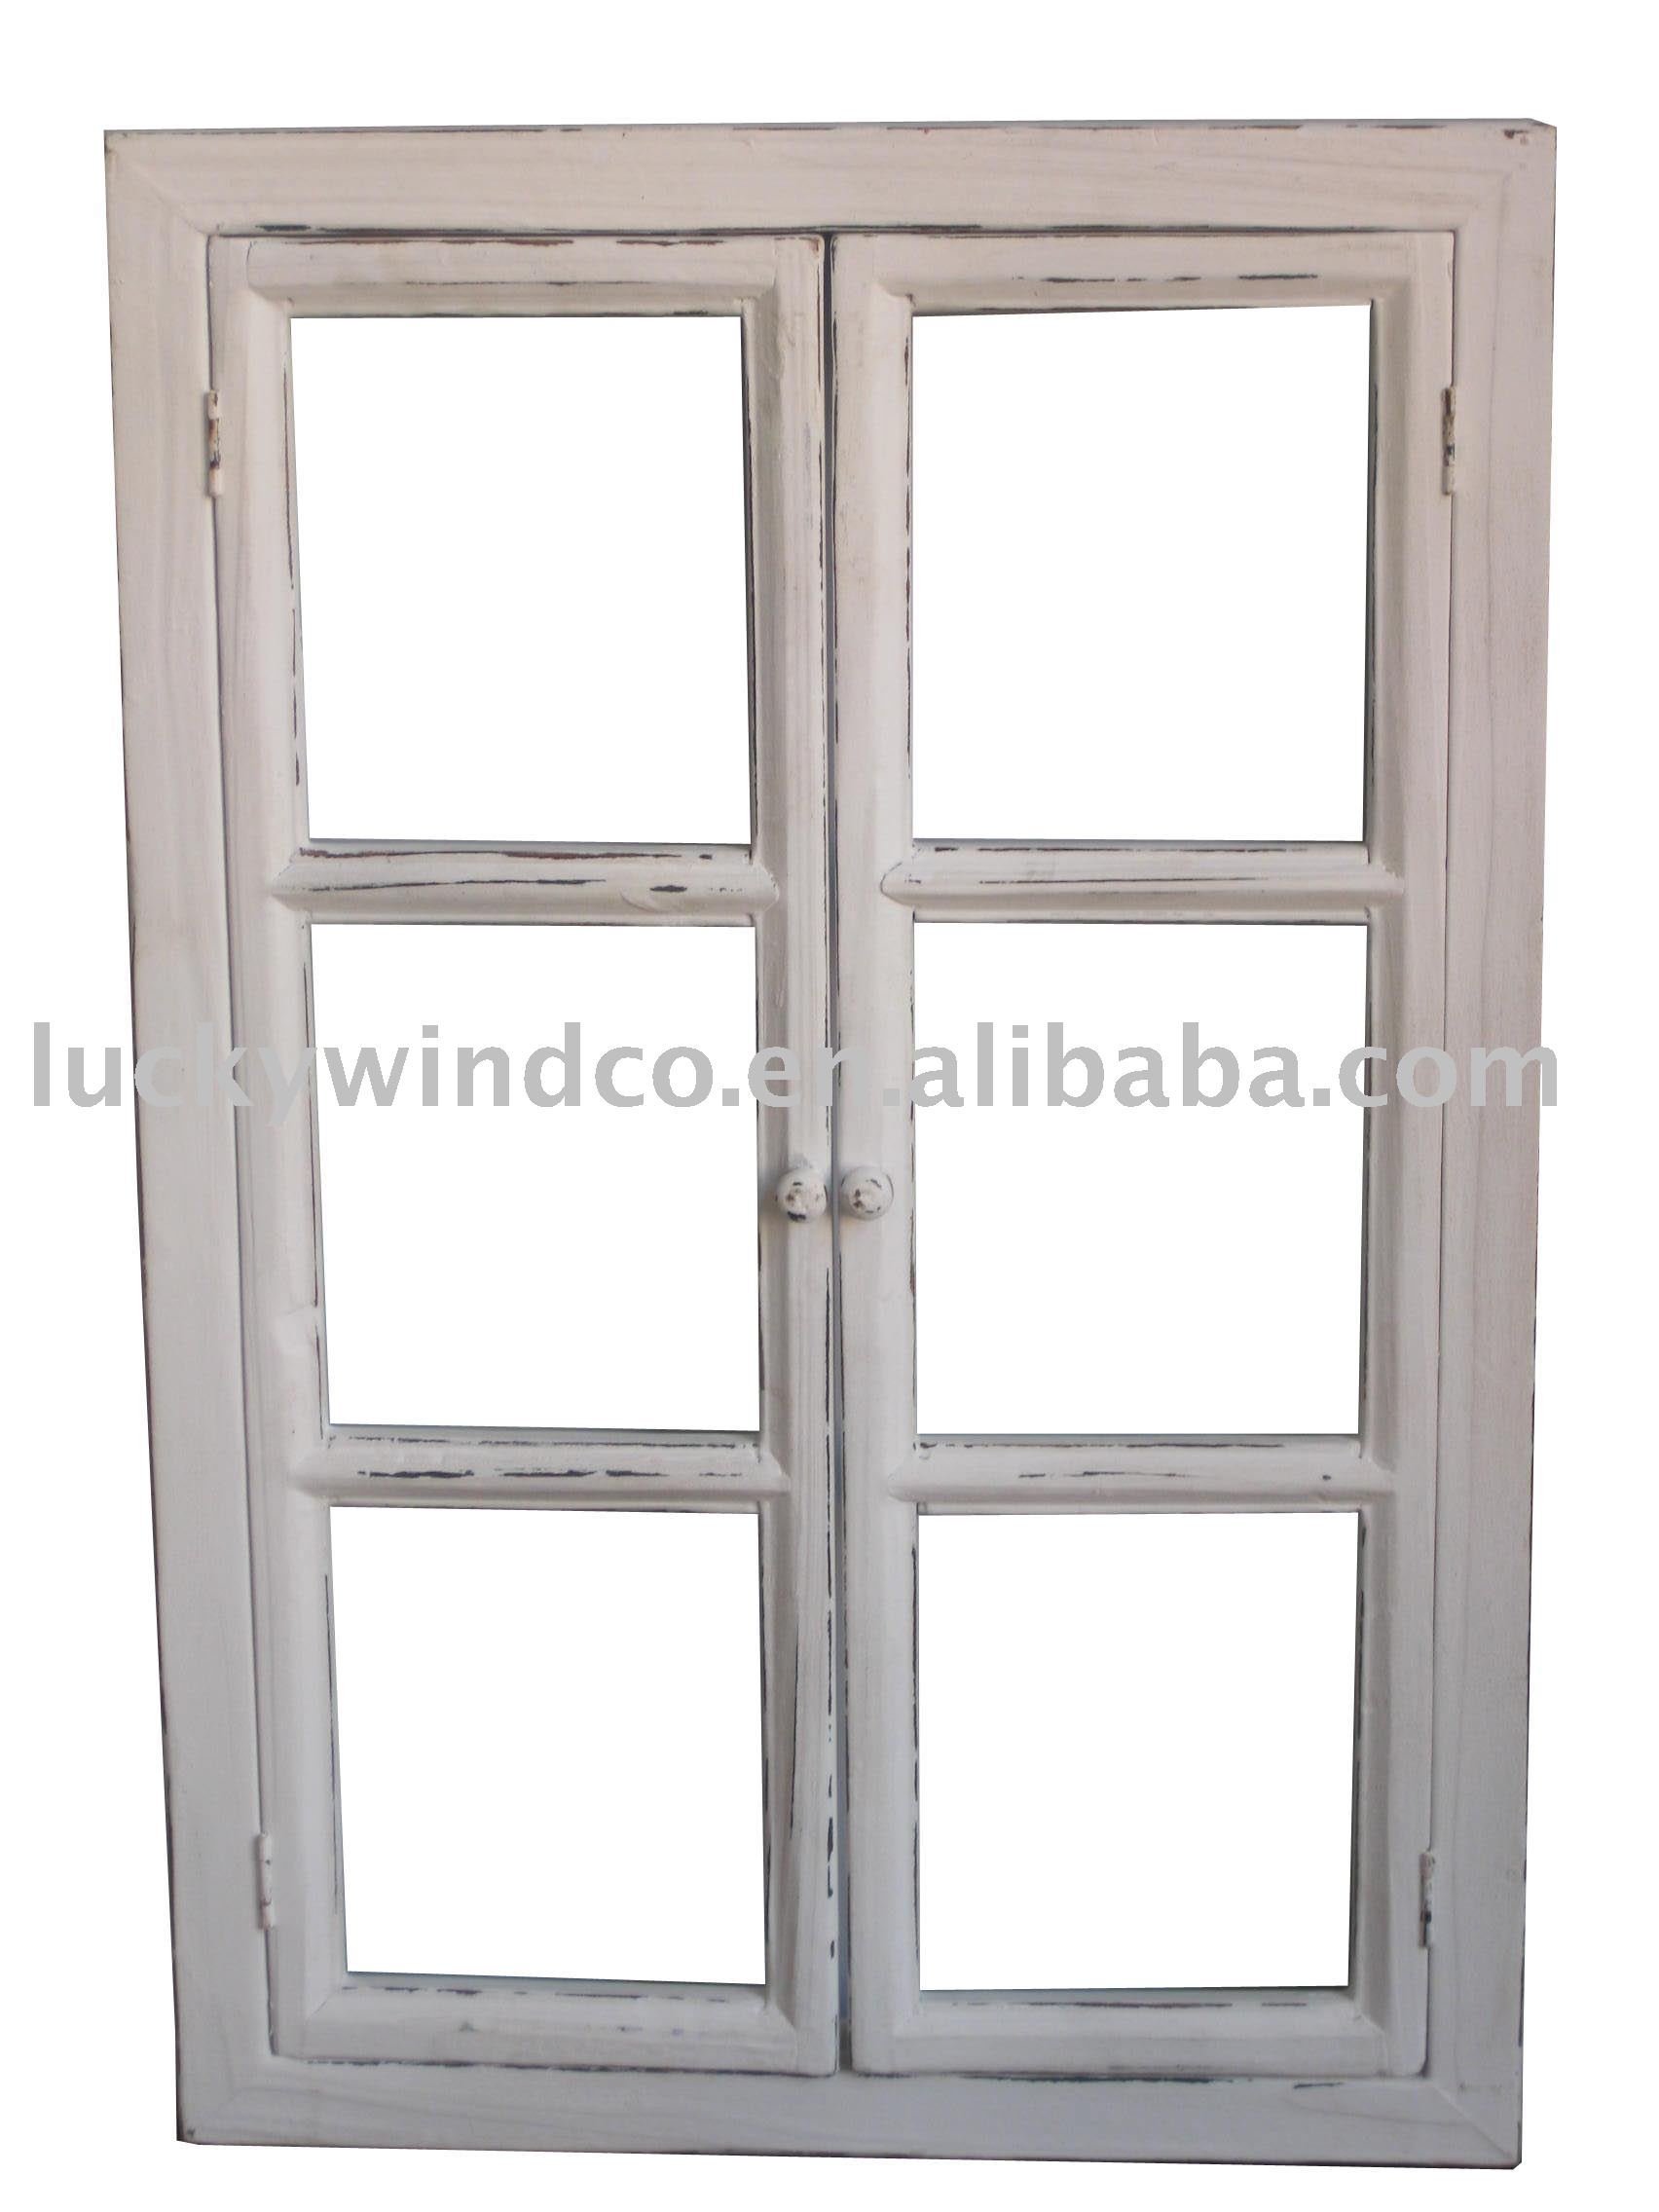 White window frame - Wooden Window Frame Buy Wooden Window Frame Window Frame Wood Window Product On Alibaba Com